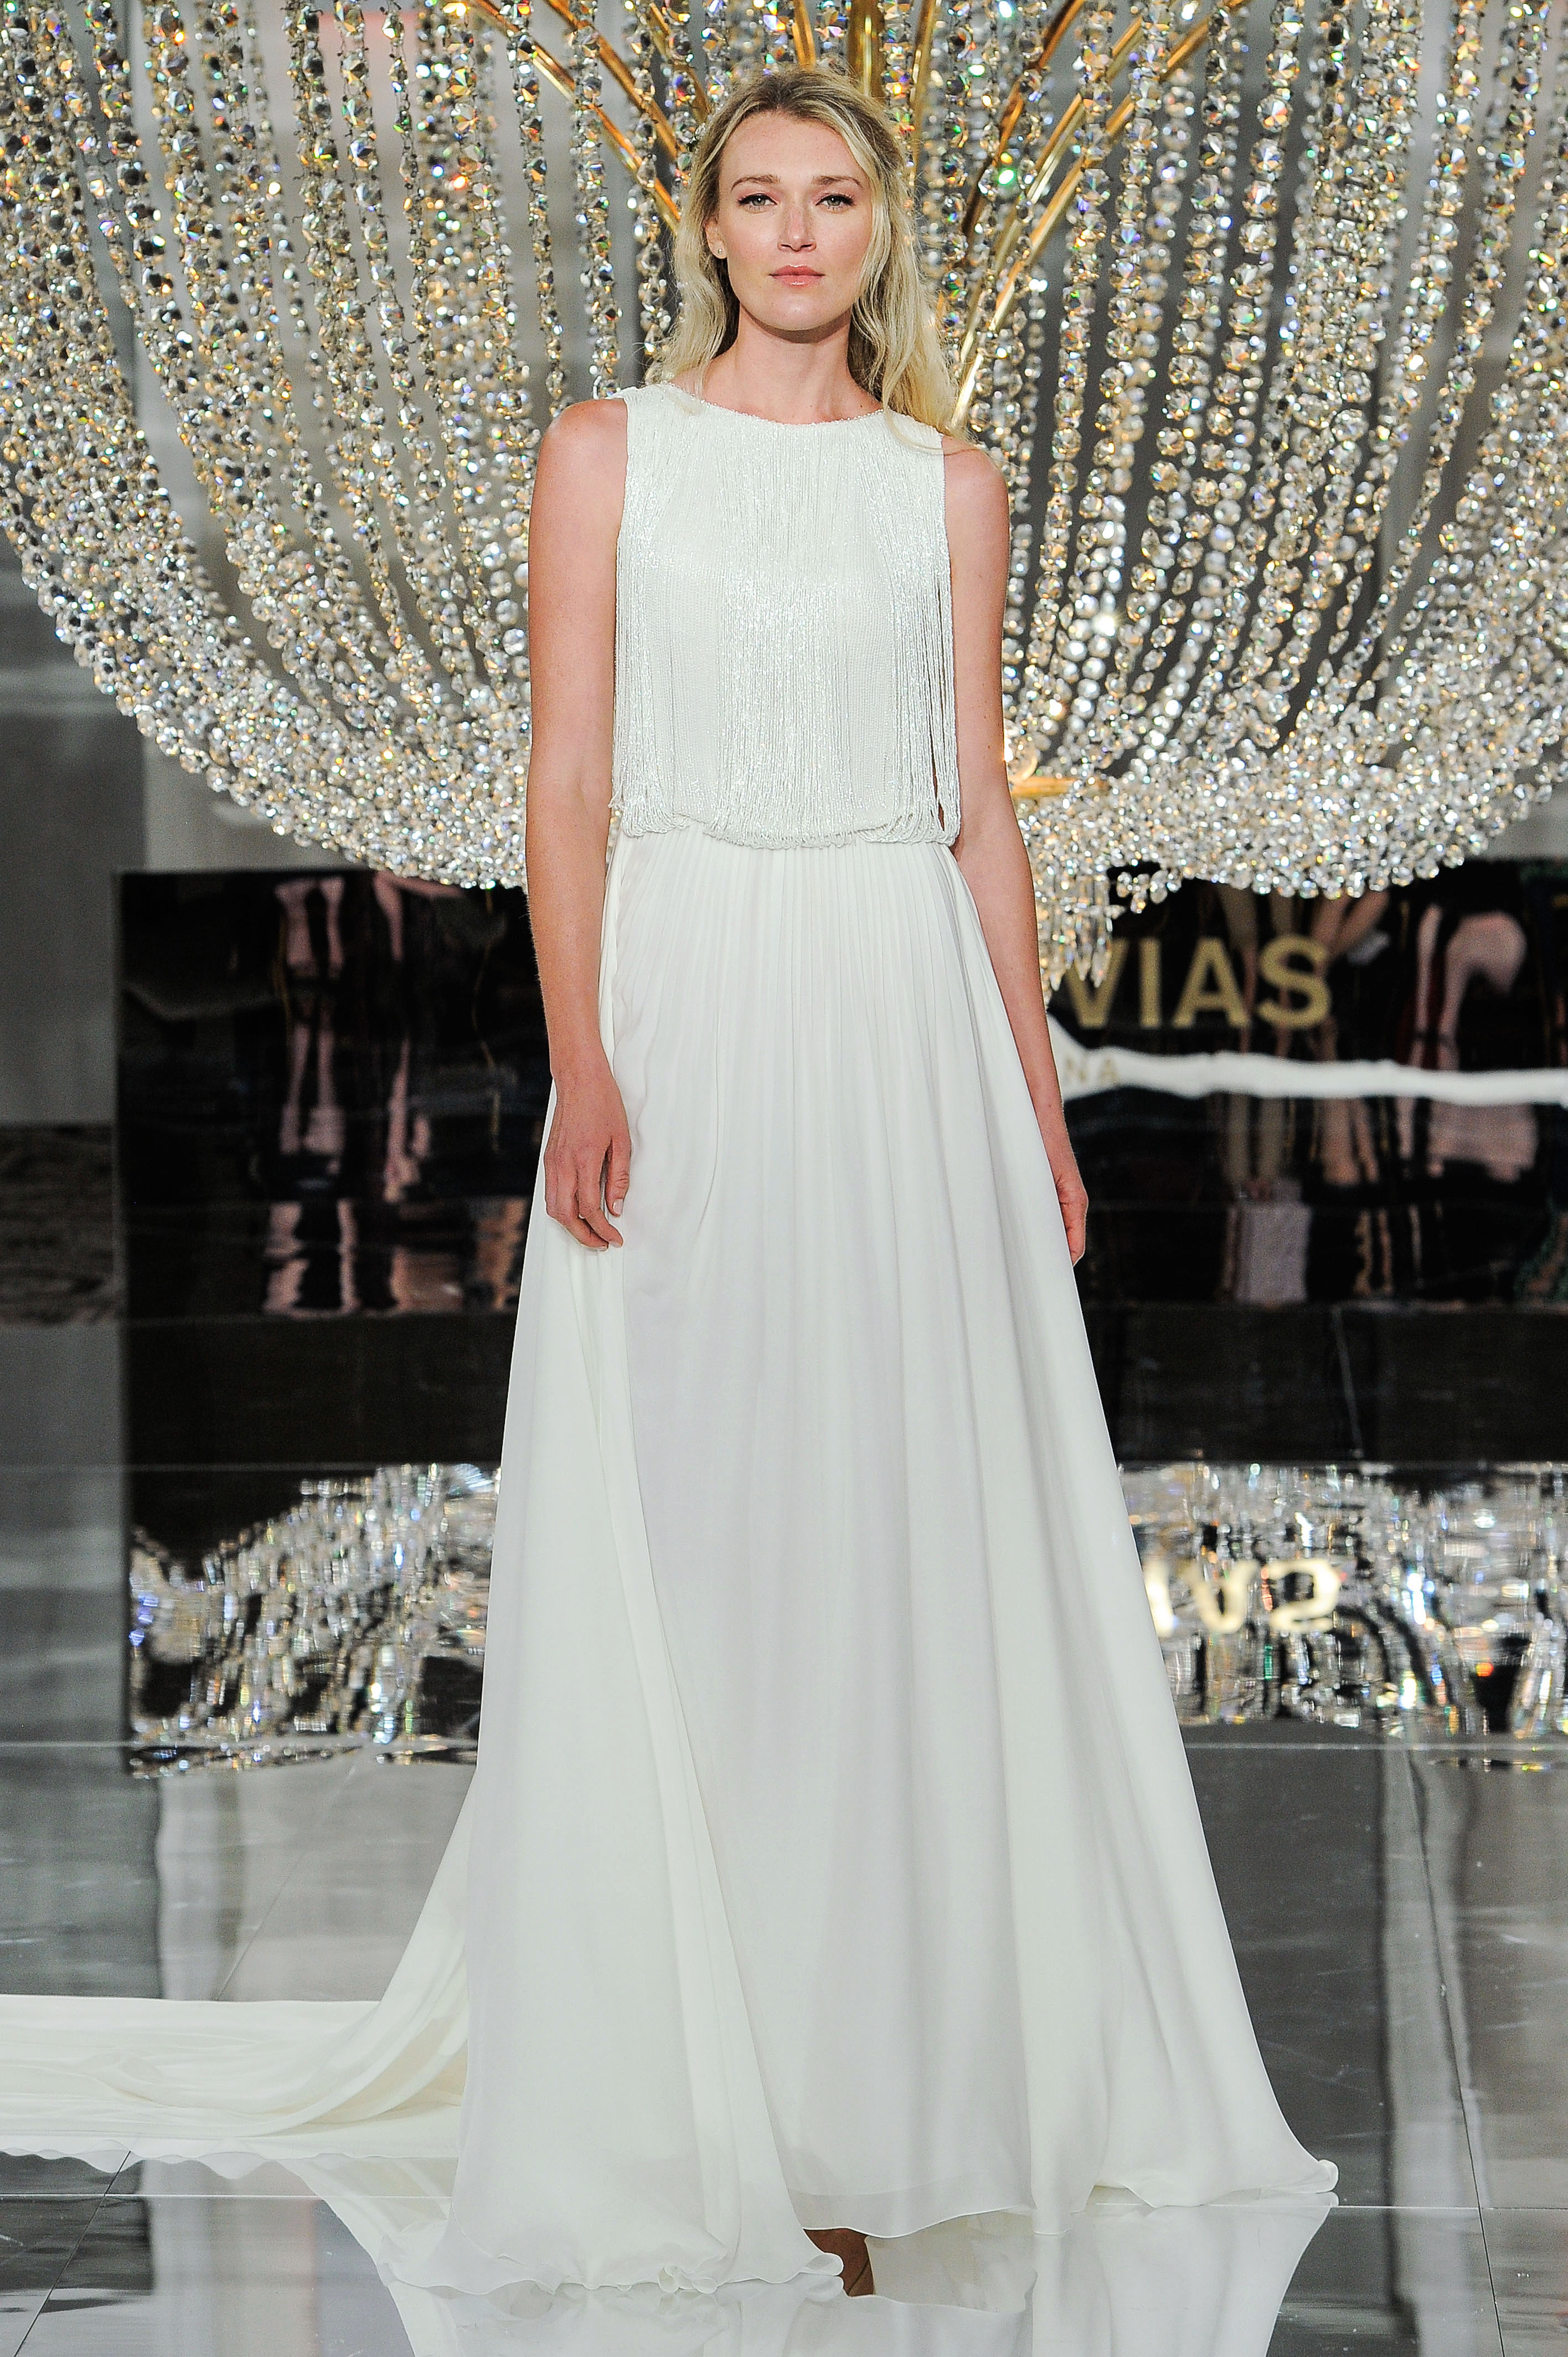 pronovias wedding dress fall 2018 sleeveless a-line loose